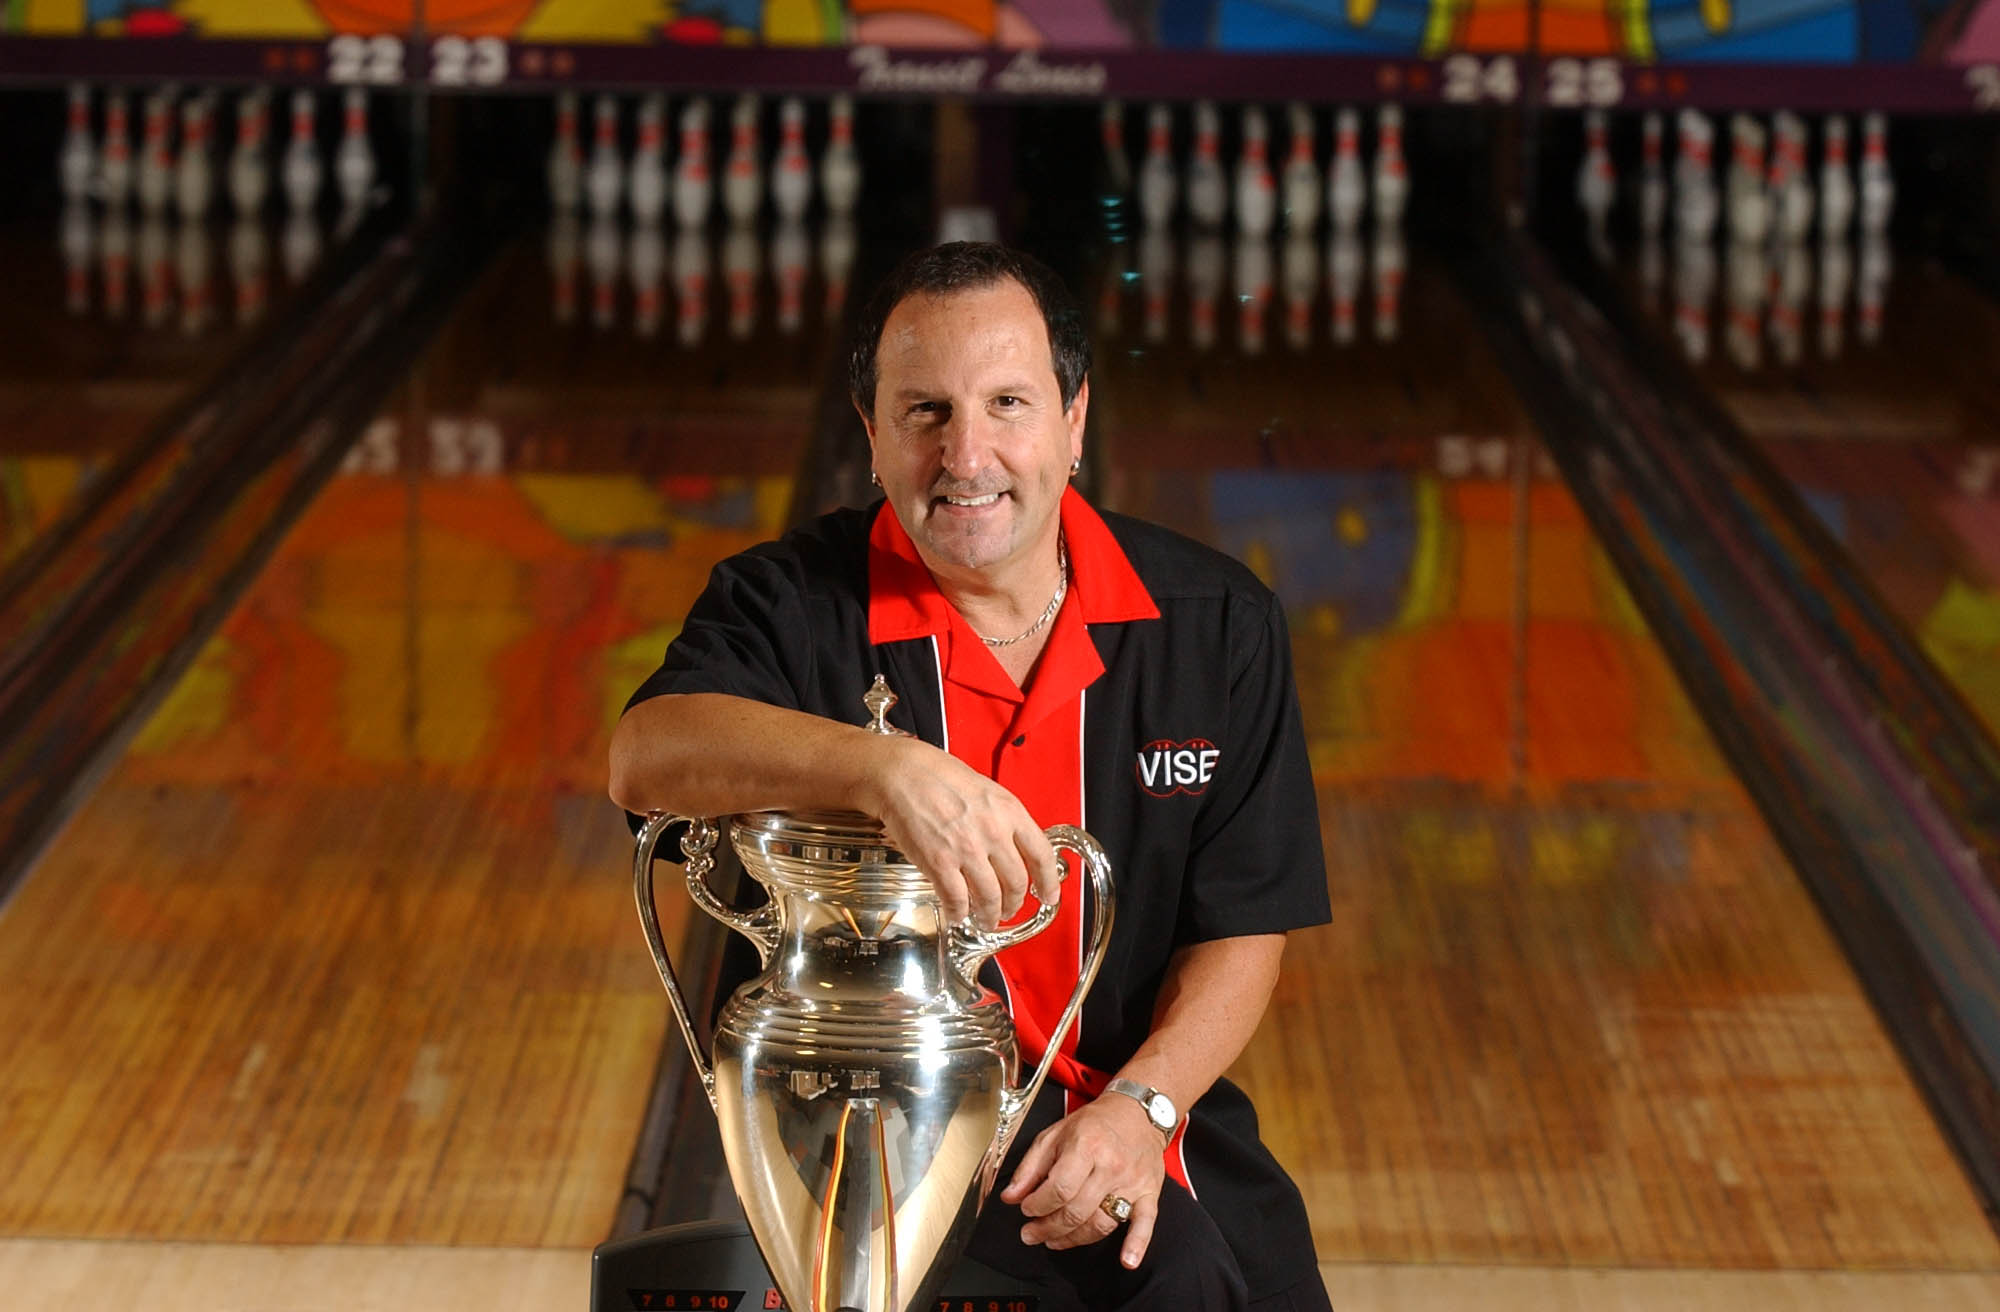 Tom Baker, pictured displaying his 2004 PBA World Championship Trophy, just won the PBA60 tournament in New Port Richey, Fla. (Buffalo News file photo)